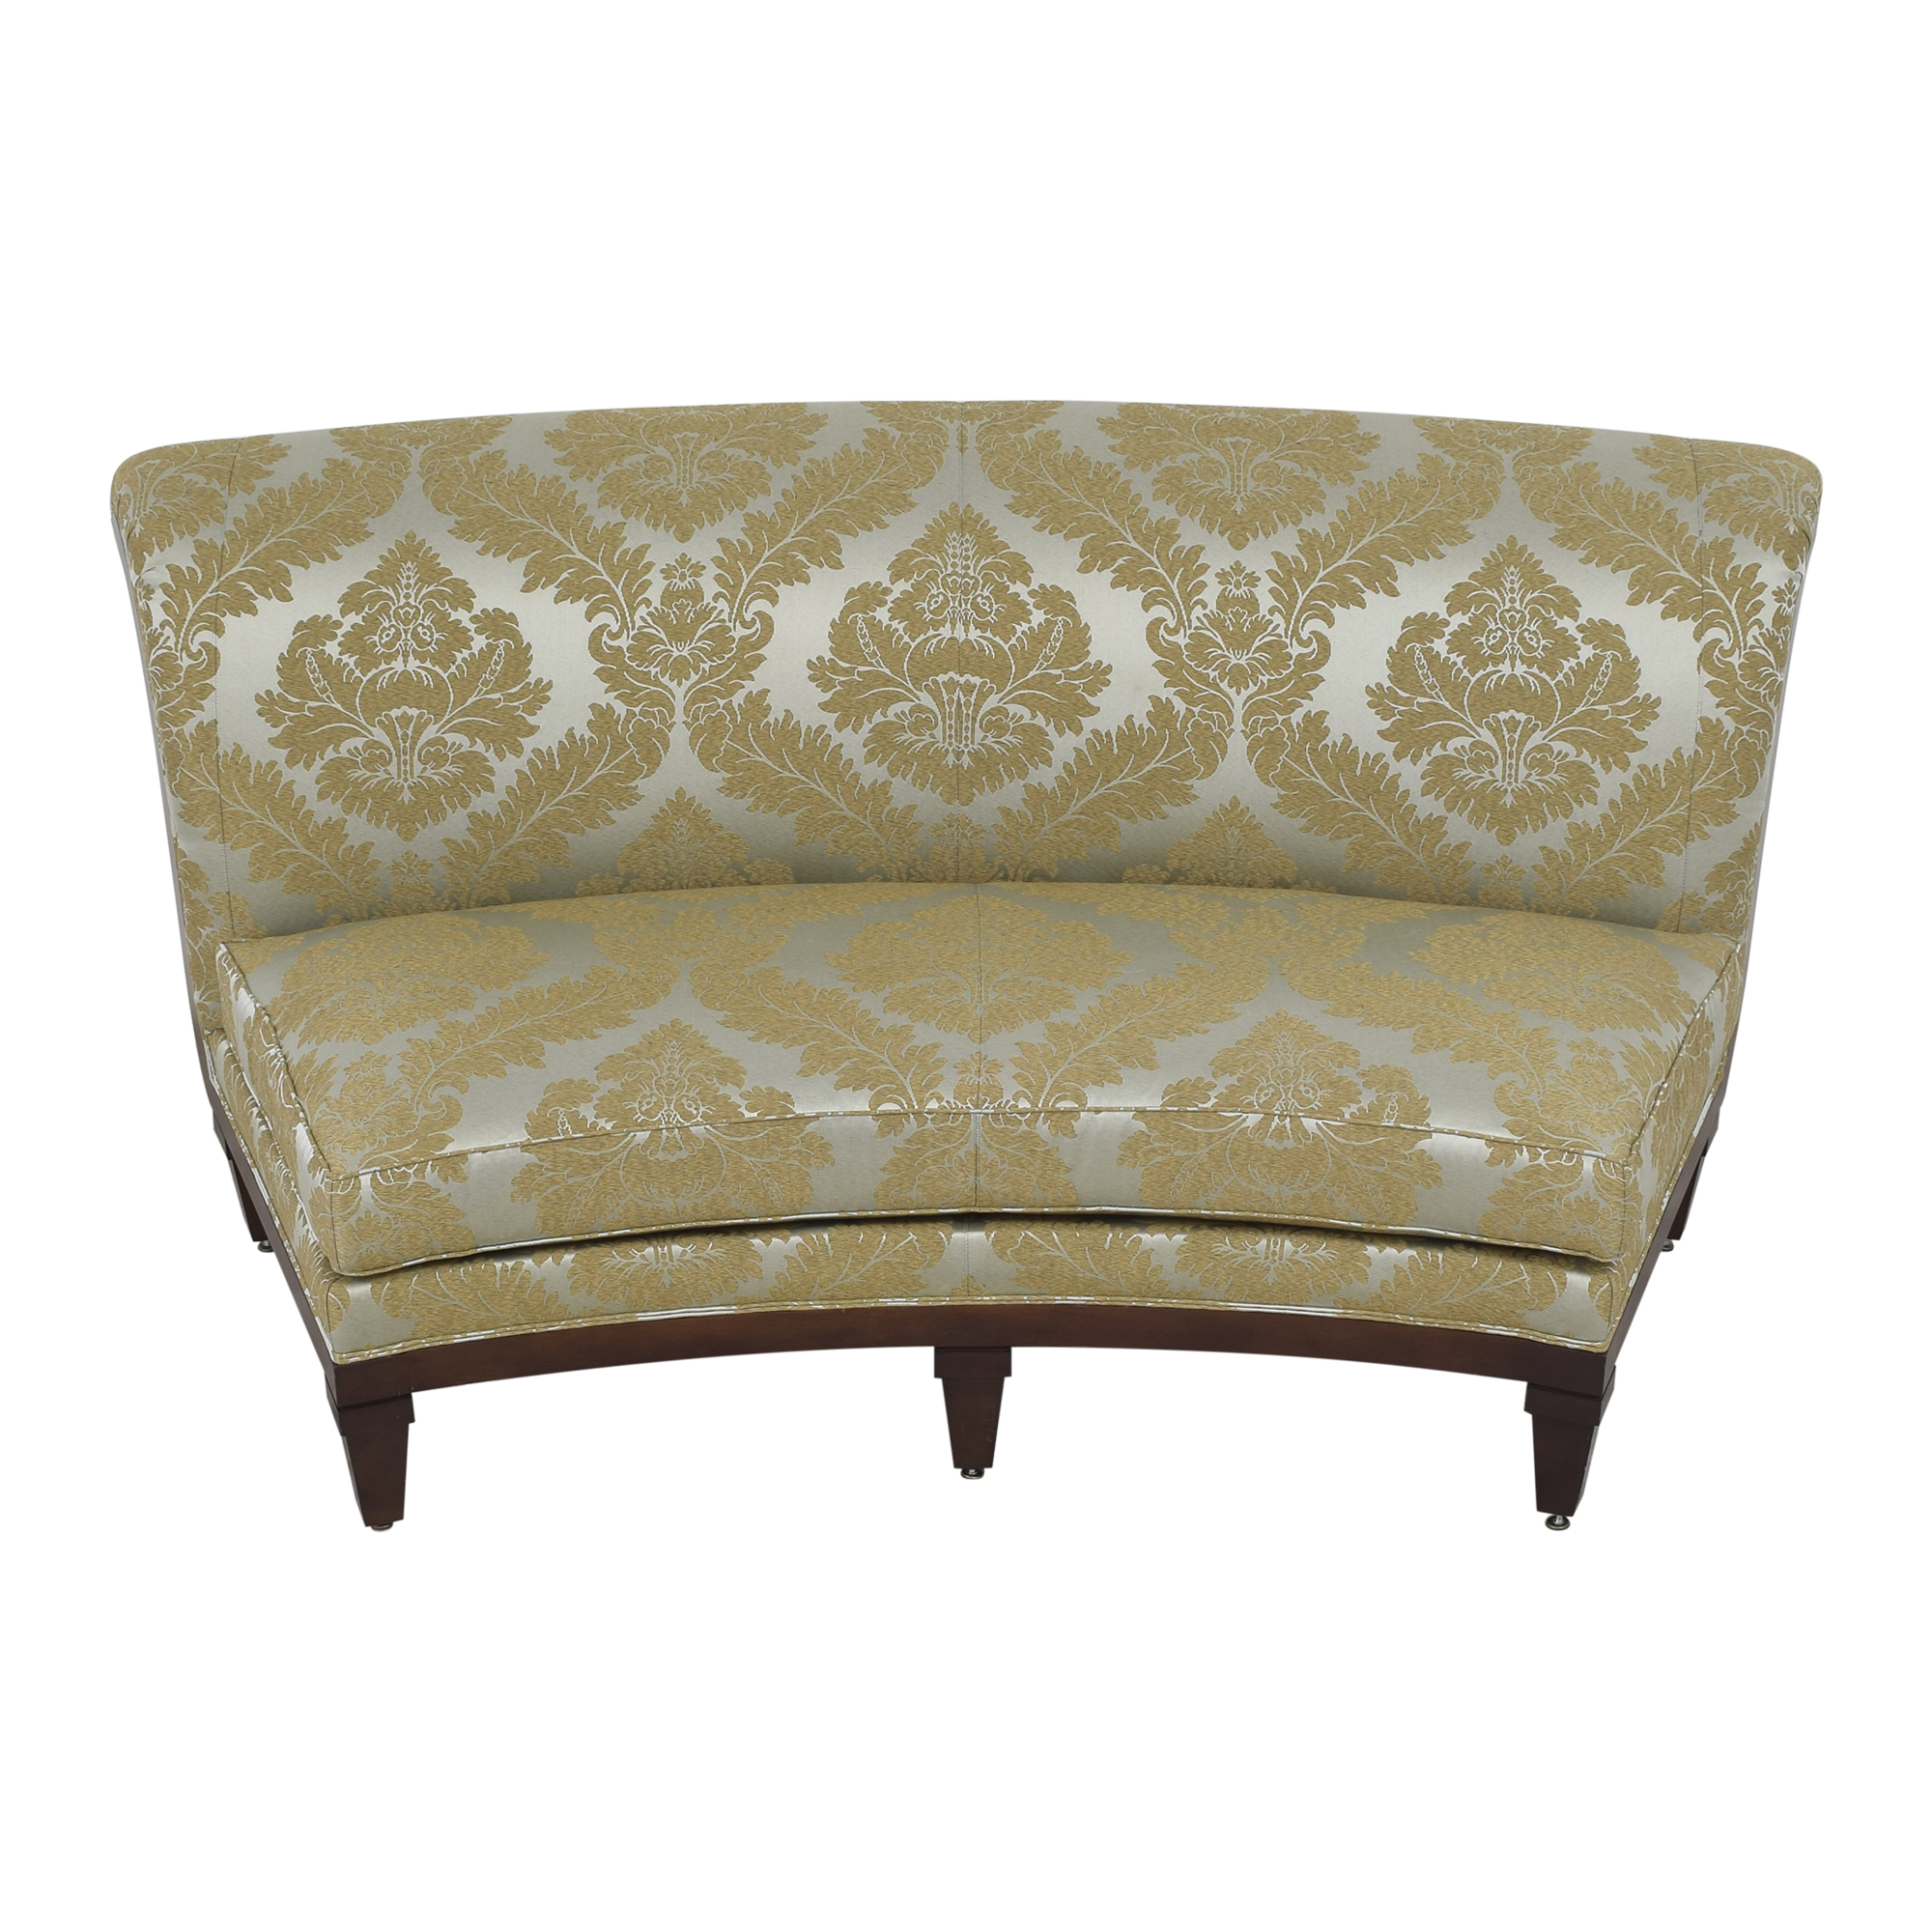 Drexel Heritage Drexel Heritage Curved Banquette pa